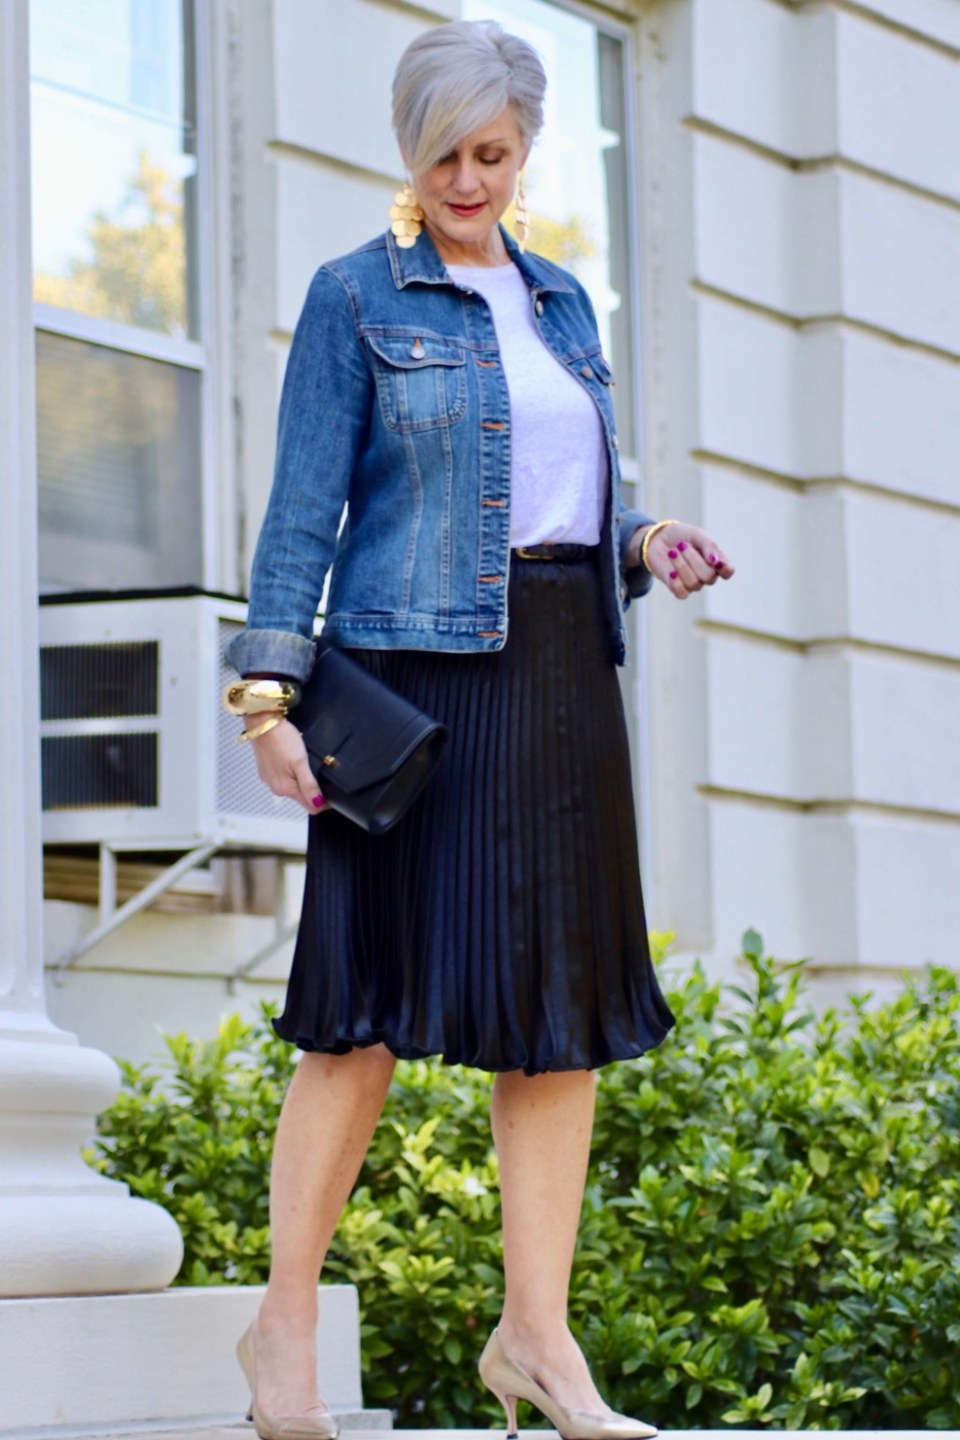 beth from Style at a Certain Age wears a black pleated skirt, white tee, denim jacket, and gold metallic pumps